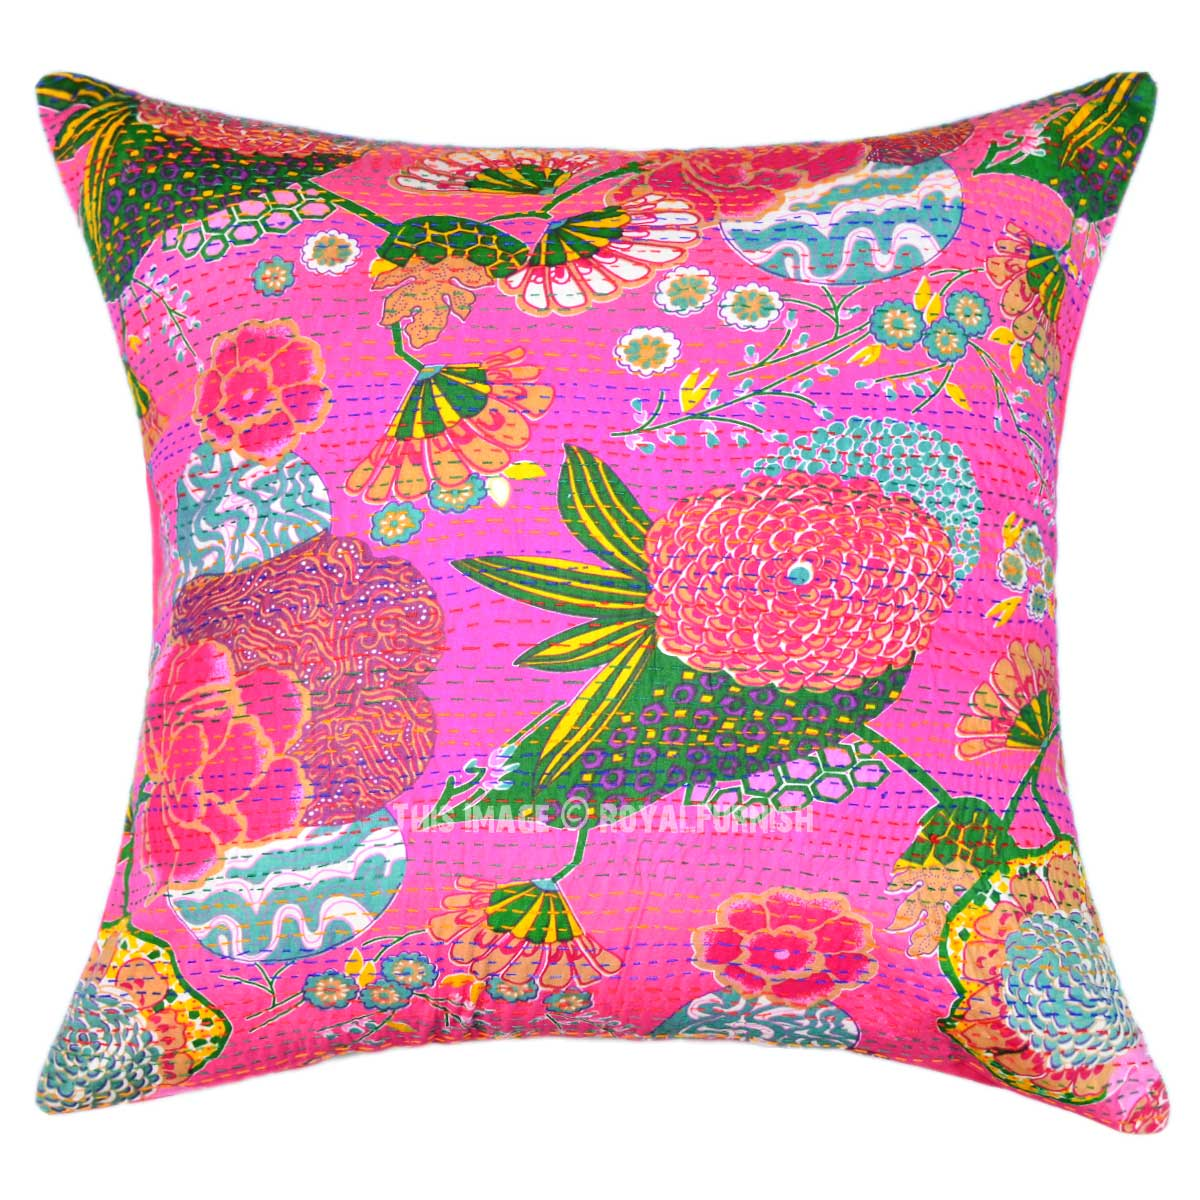 the best 28 images of decorative pillow covers 24x24